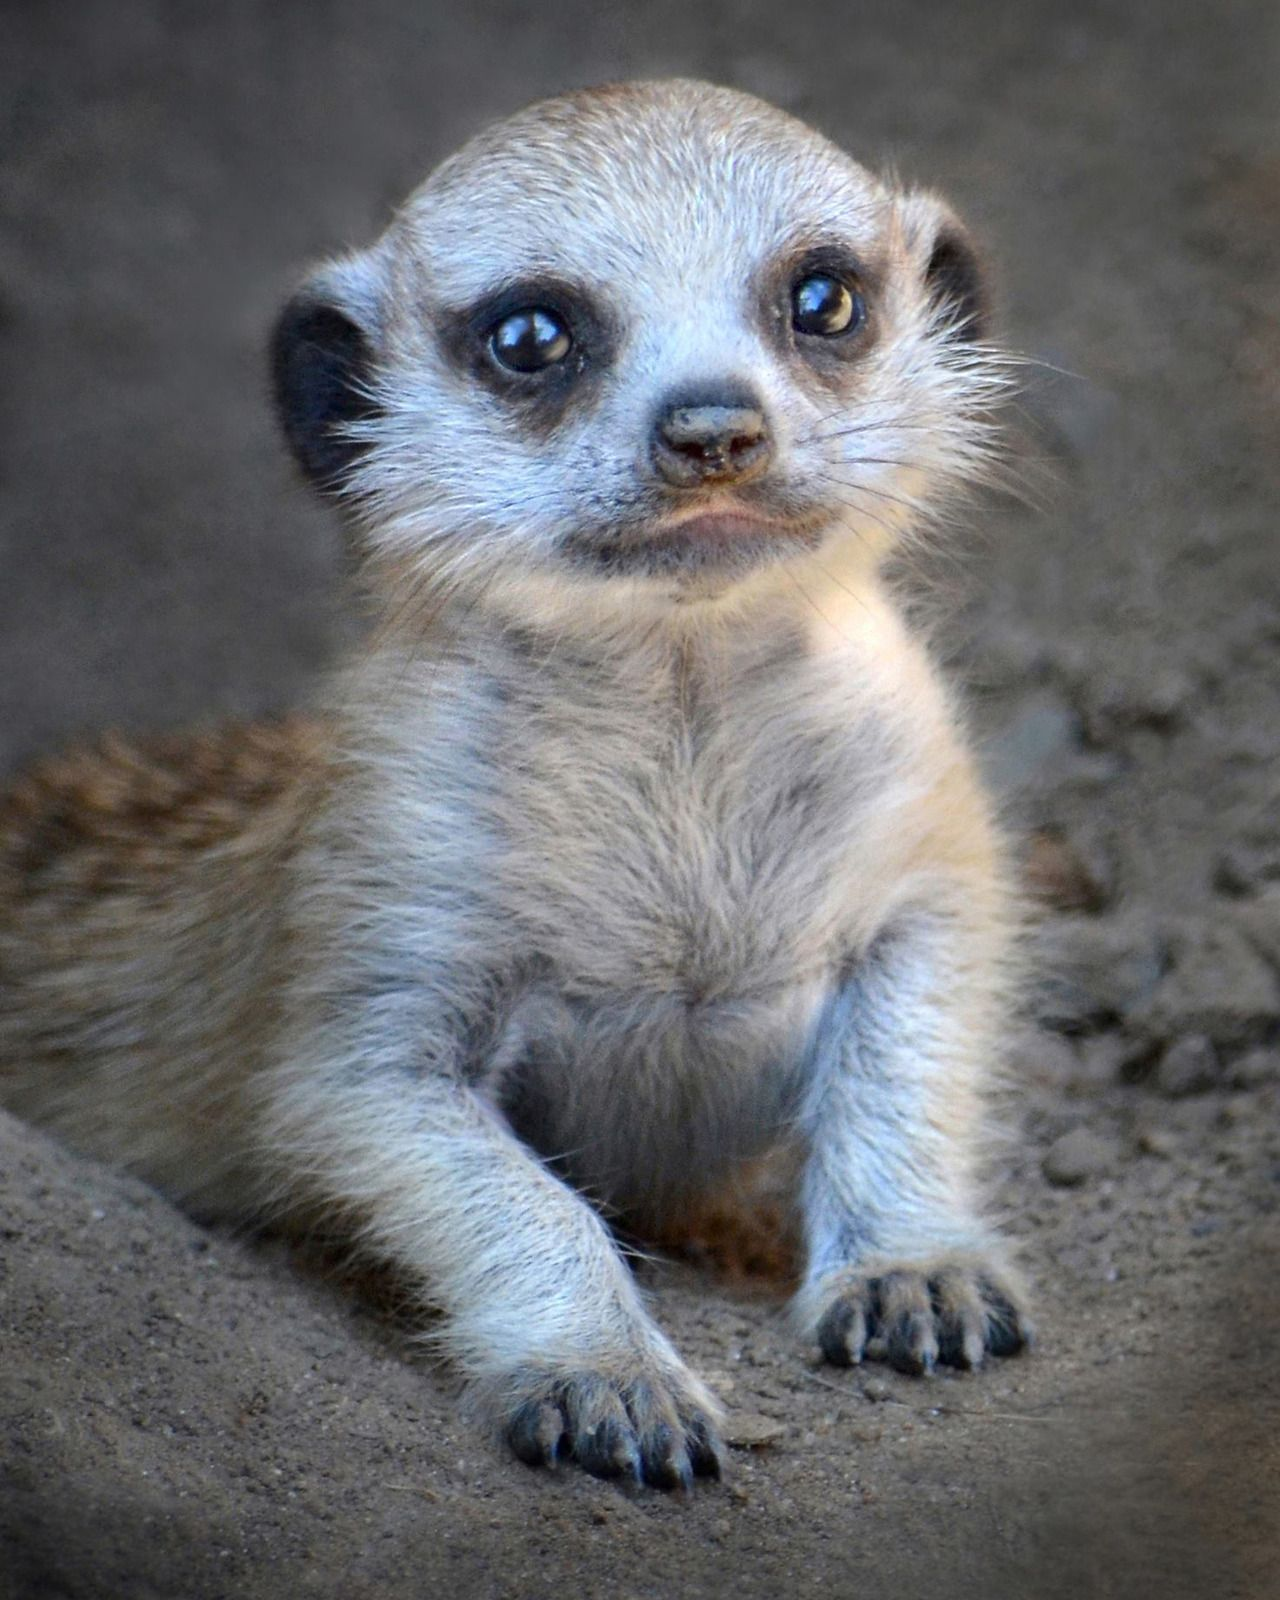 Mondays always need more meerkat. Fun fact Meerkats are